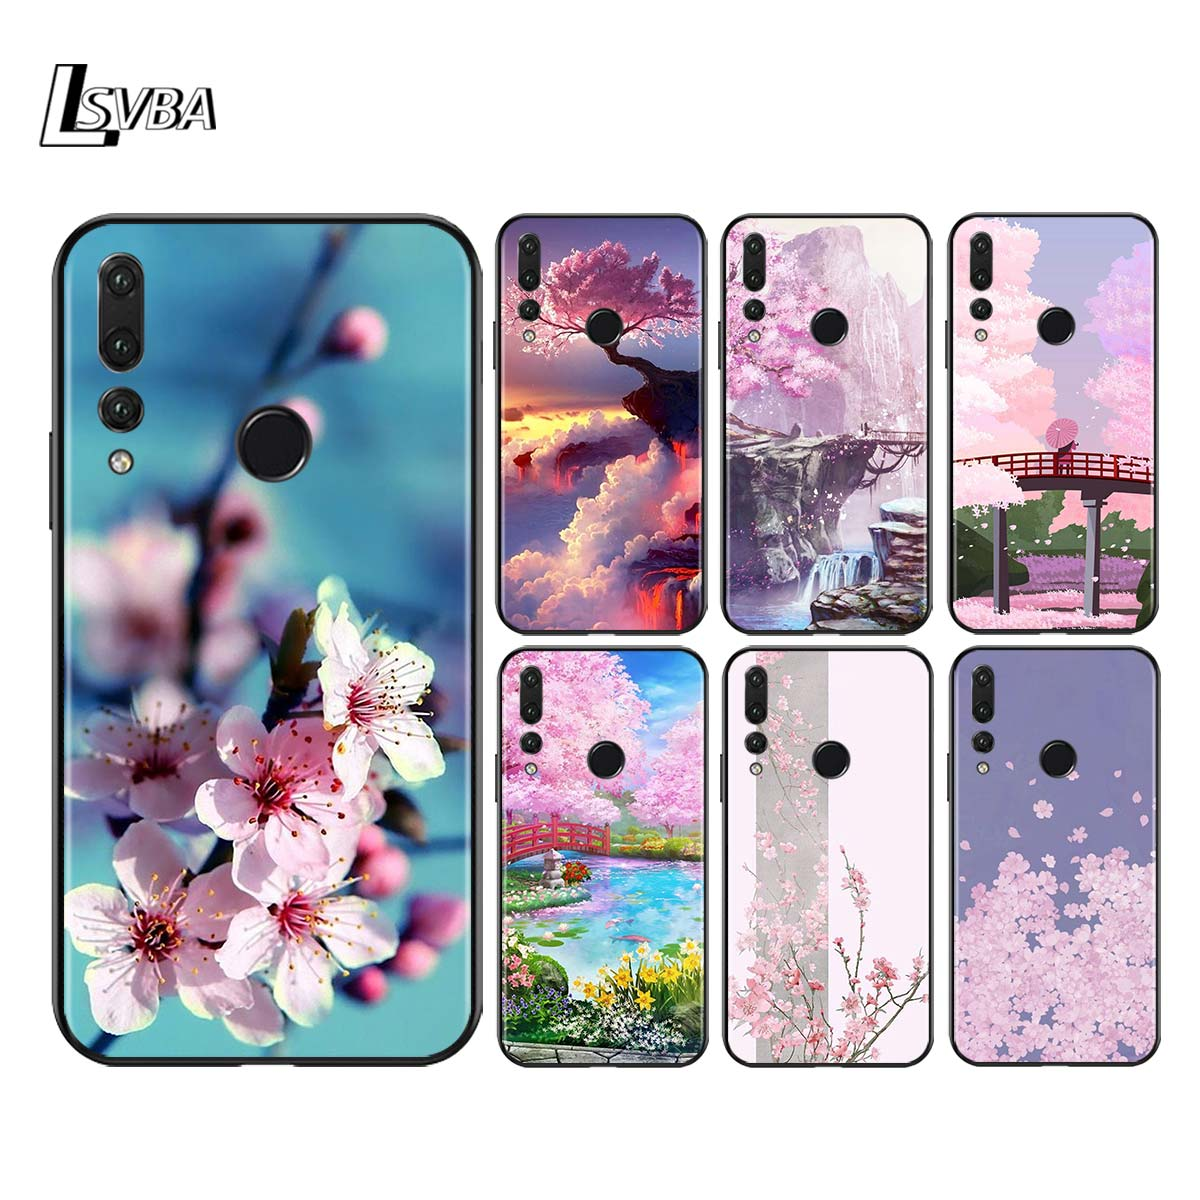 Silicone Soft Cover Cherry Blossom For Huawei Honor 30 20 Pro 10I 9A 9S 9X 8X 10 9 Lite 8 8A 7A 7C Pro Phone Case